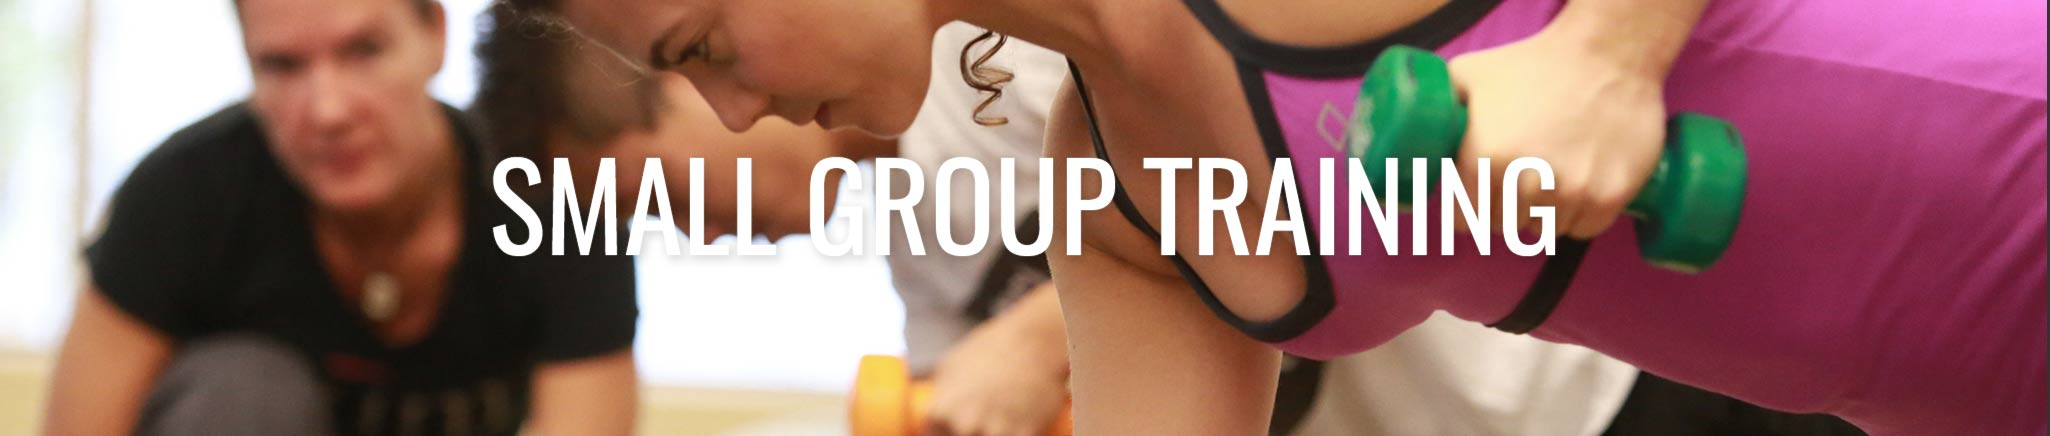 Small Group Training at ZUM Fitness in downtown Seattle is affordable and personalized.